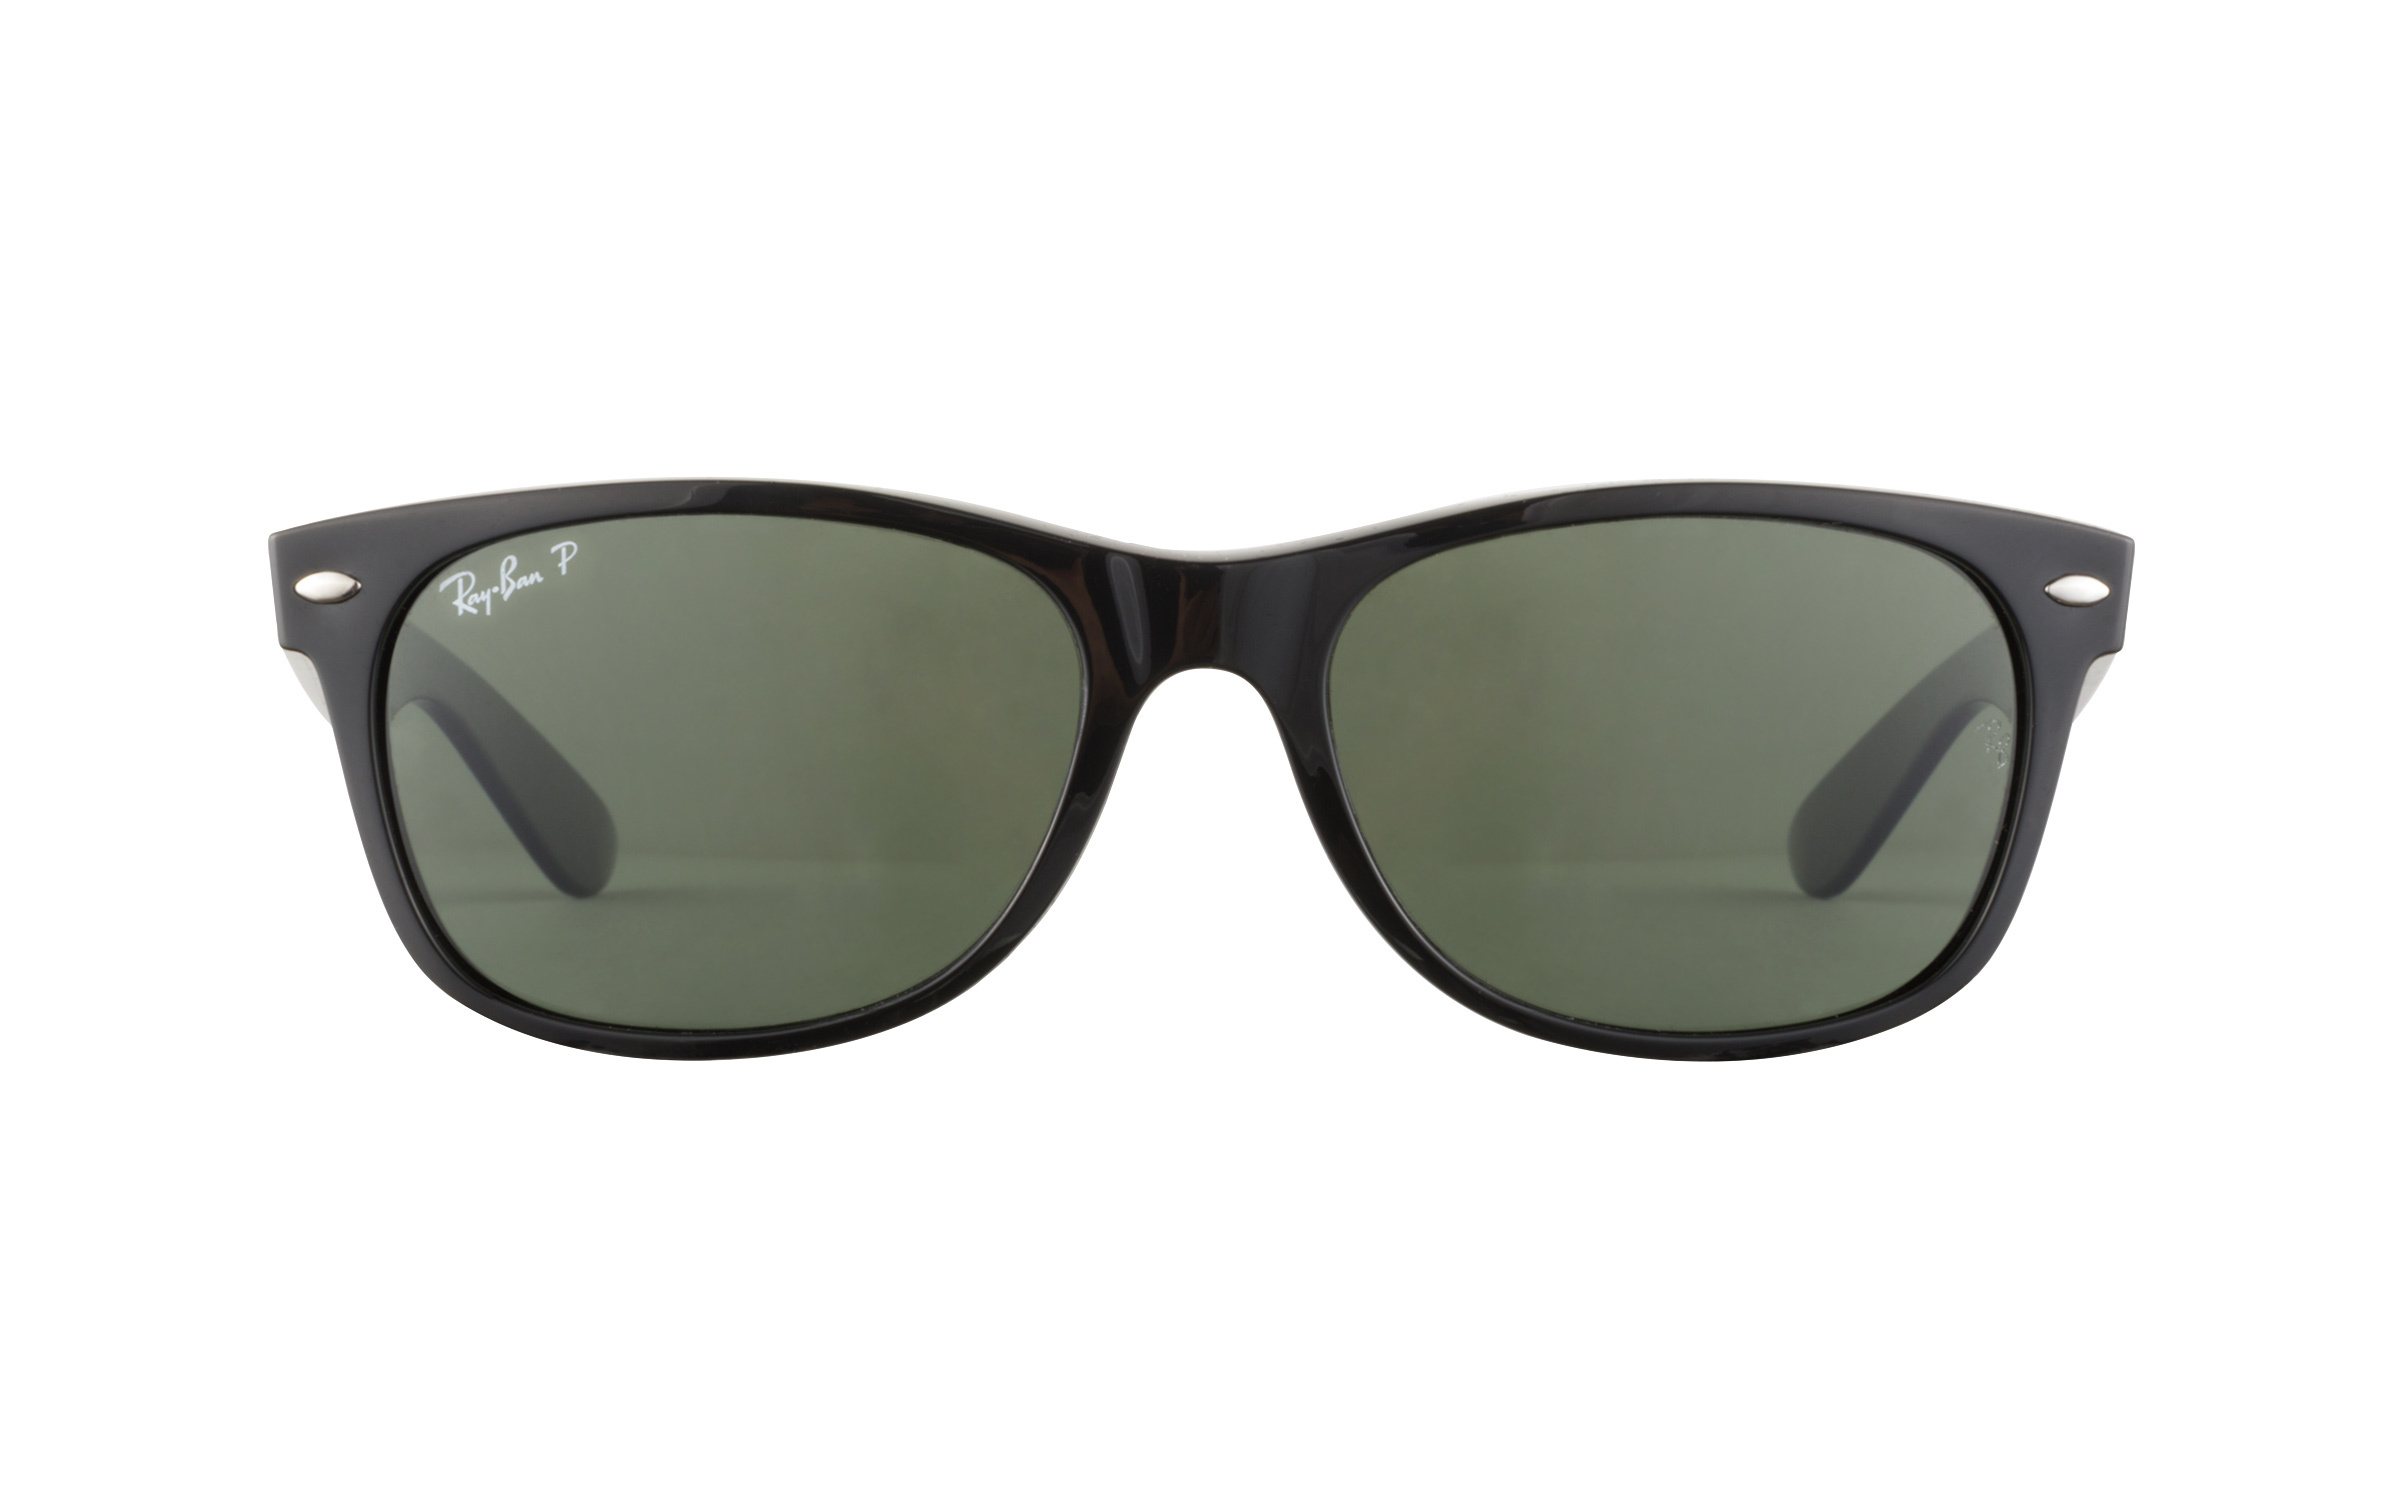 Rx Ray-Ban RB2132 901 58 55 Eyeglasses and Frame in Black - Online Coastal